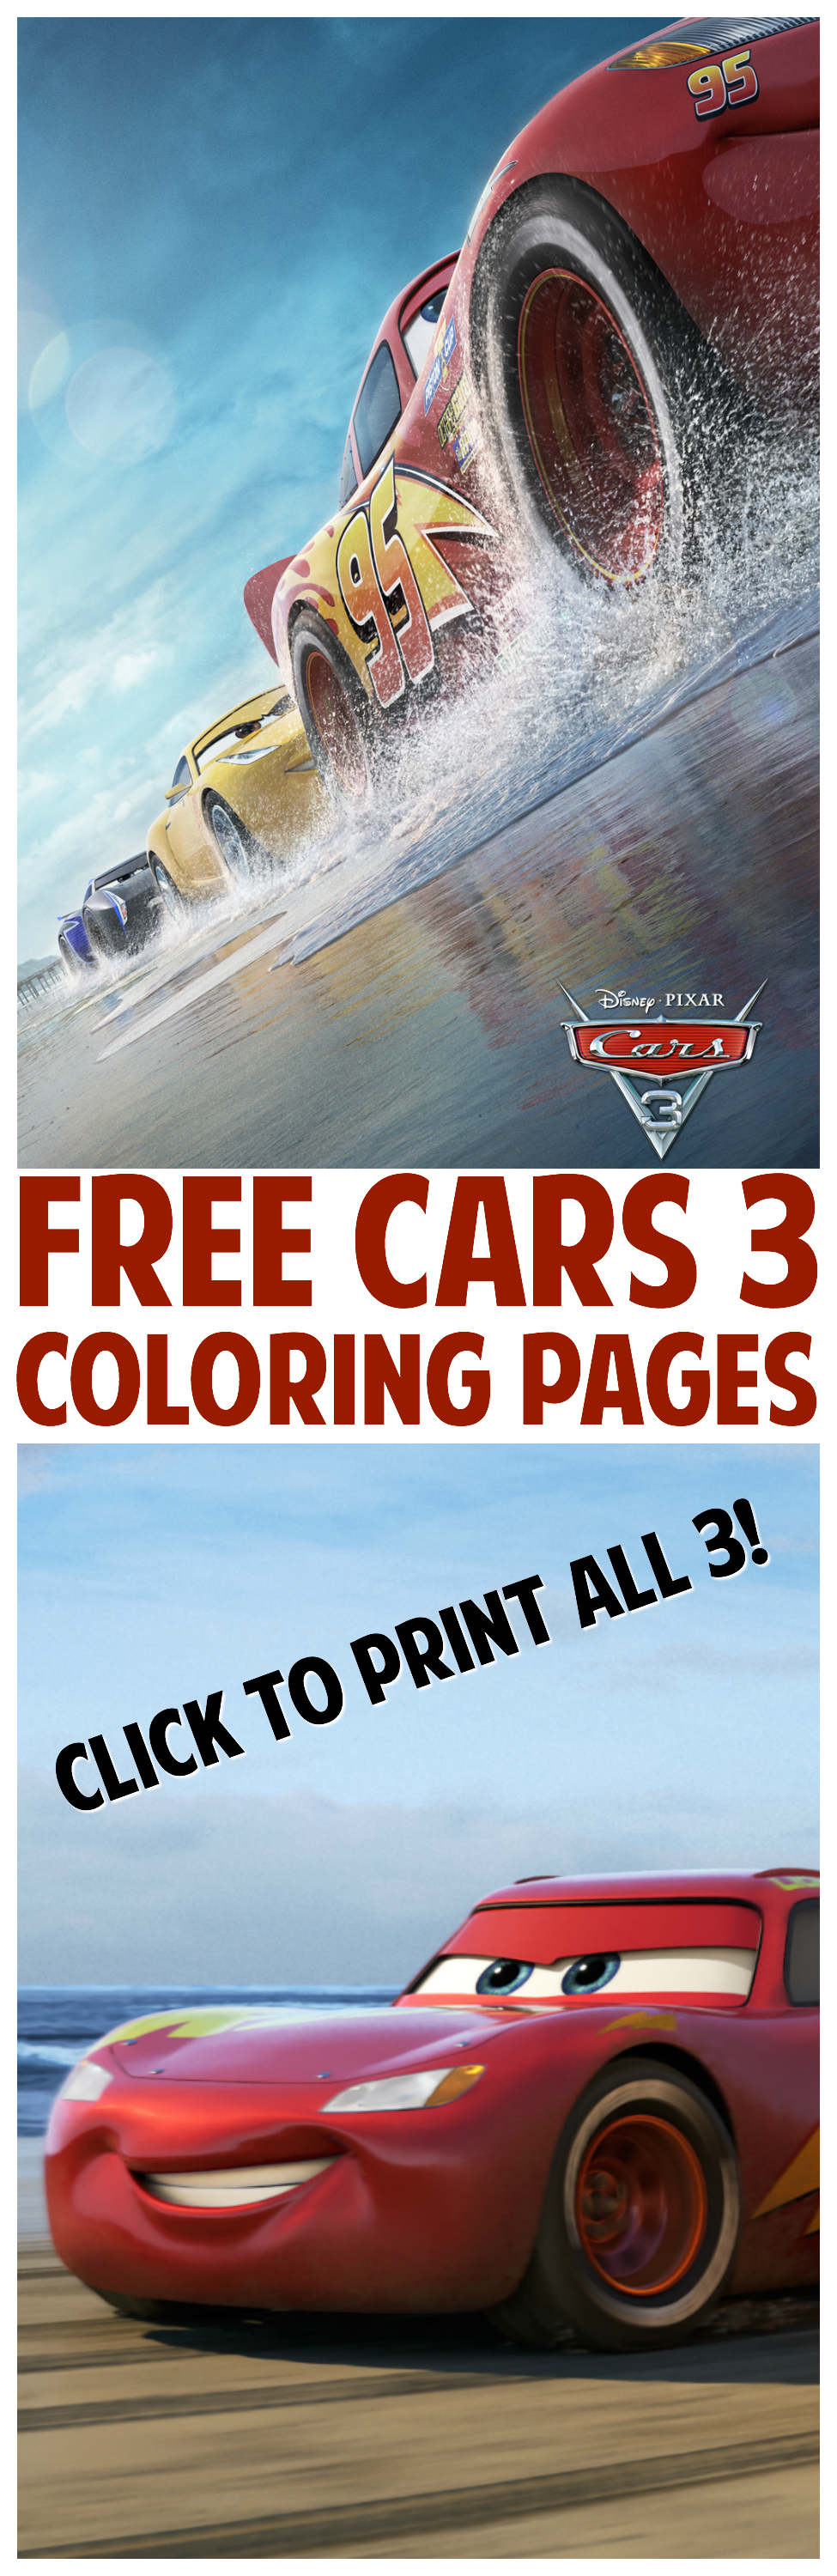 Free coloring cars - Free Cars 3 Coloring Pages